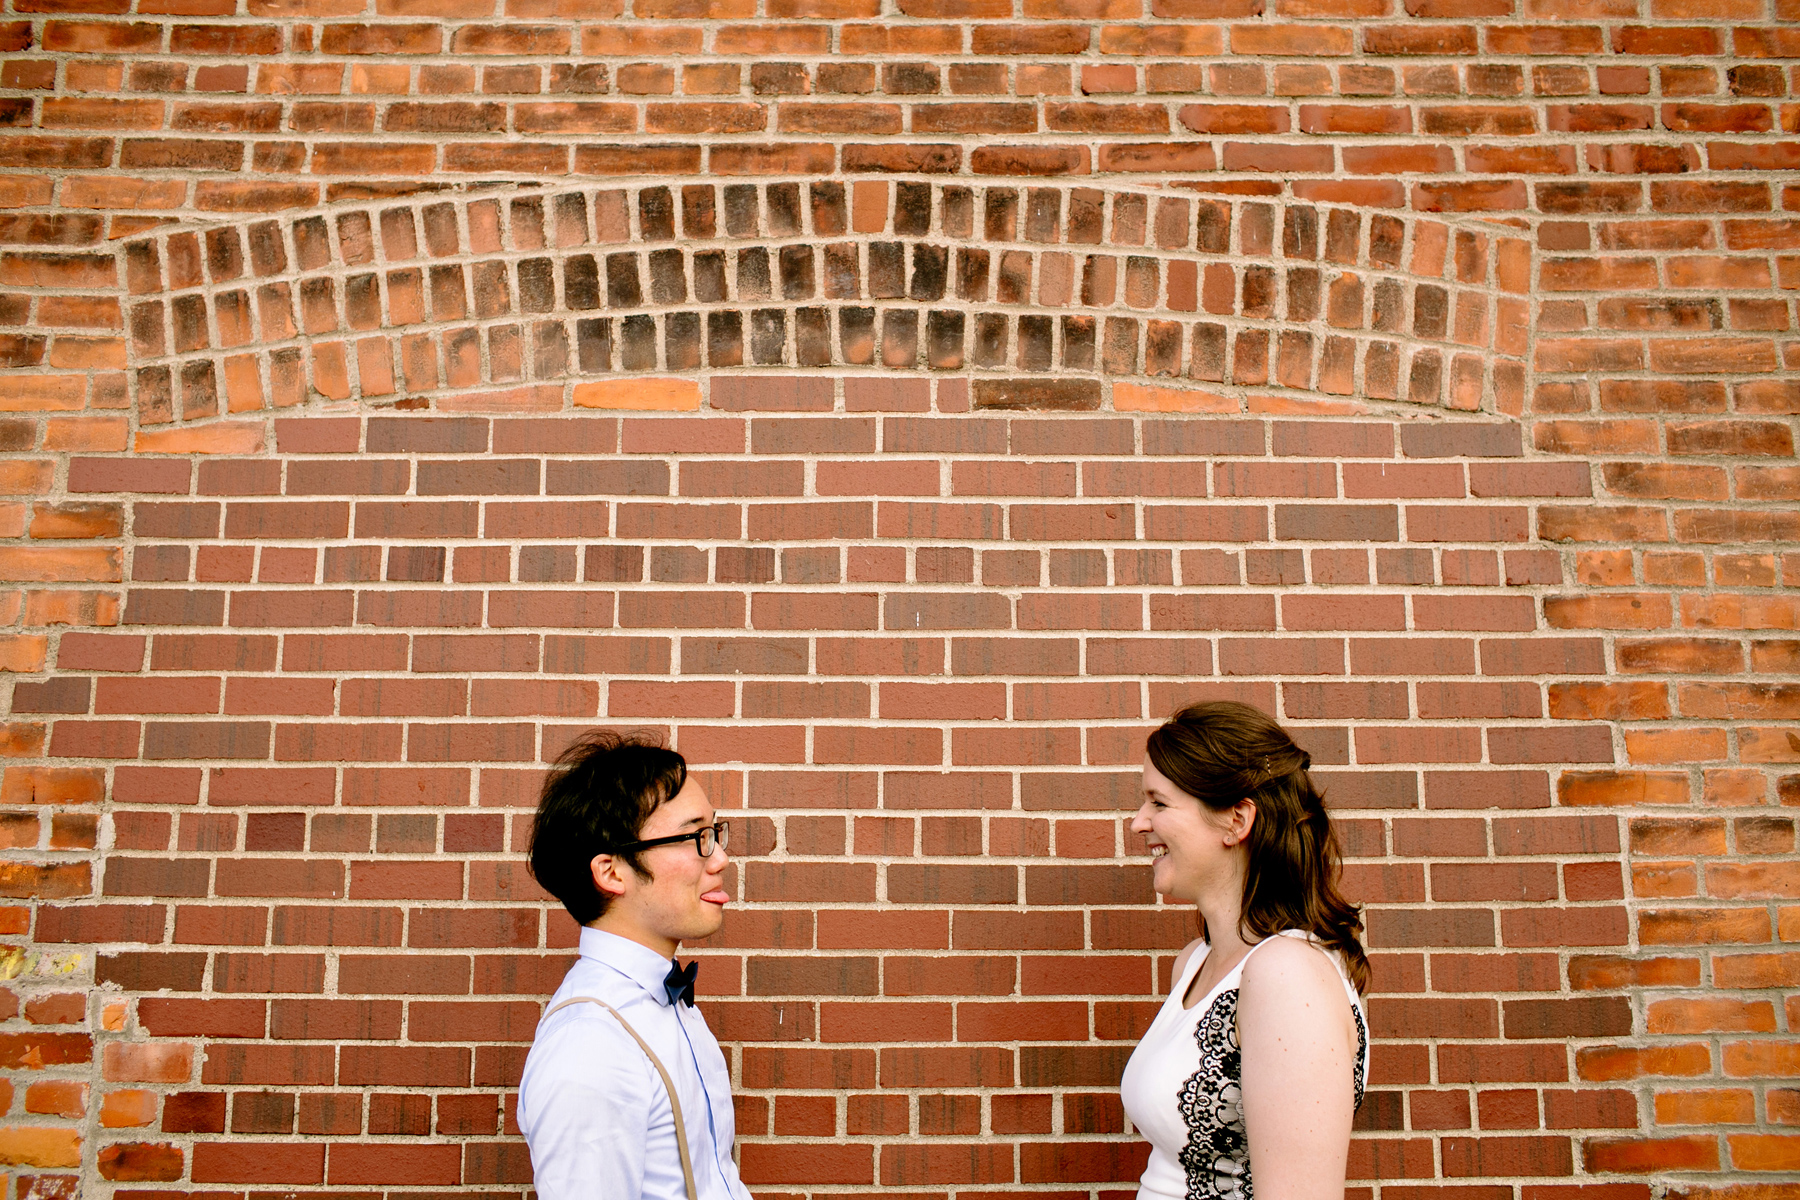 012-fredericton-engagement-photography-kandisebrown-rk2016